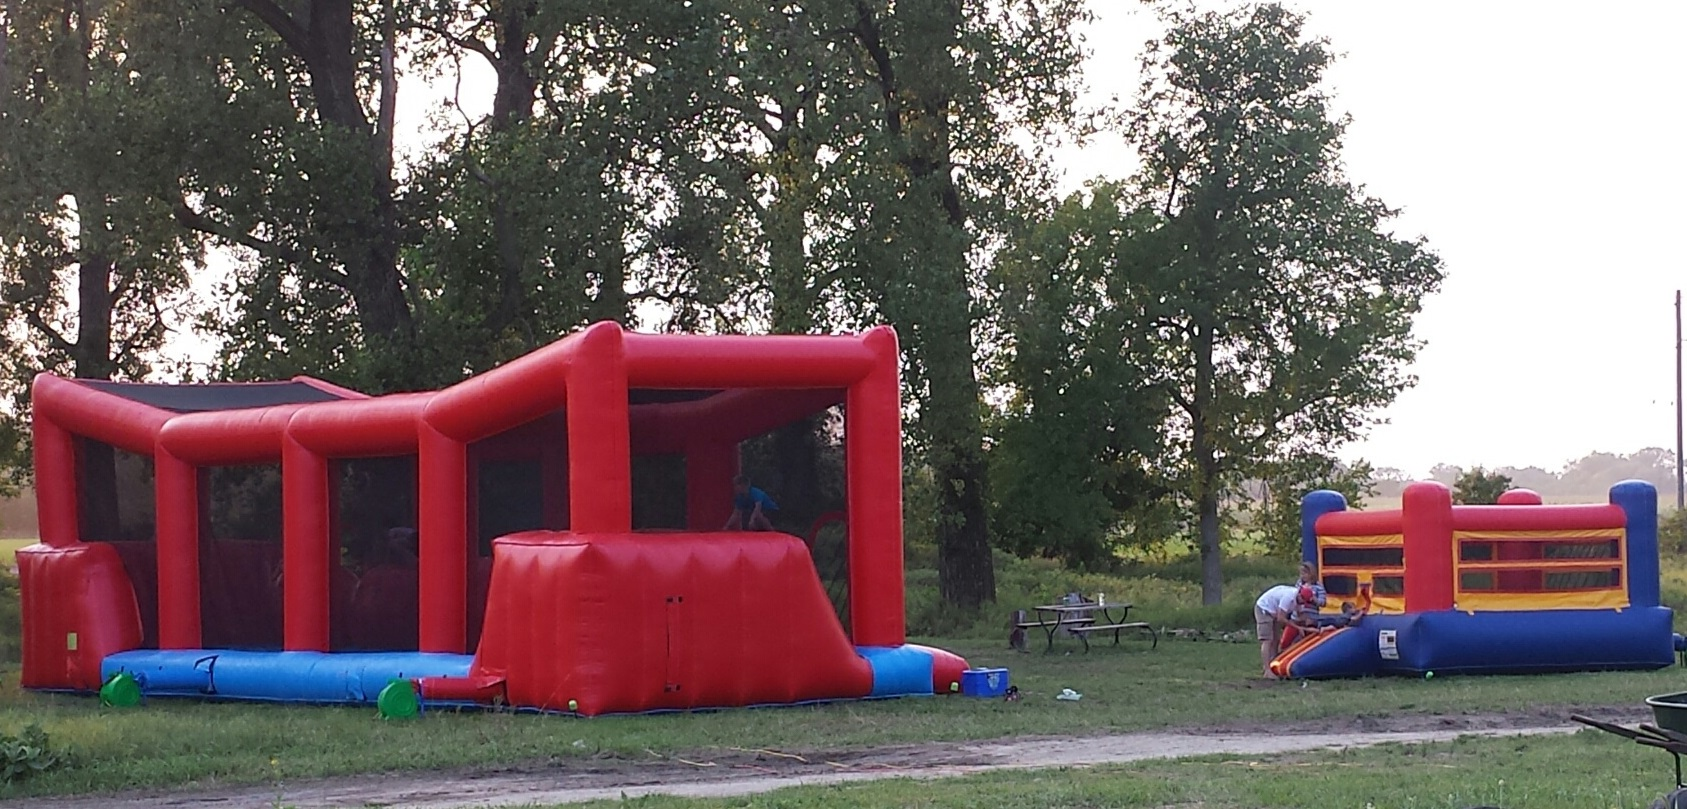 Plenty of room to set up bounce houses for the kids